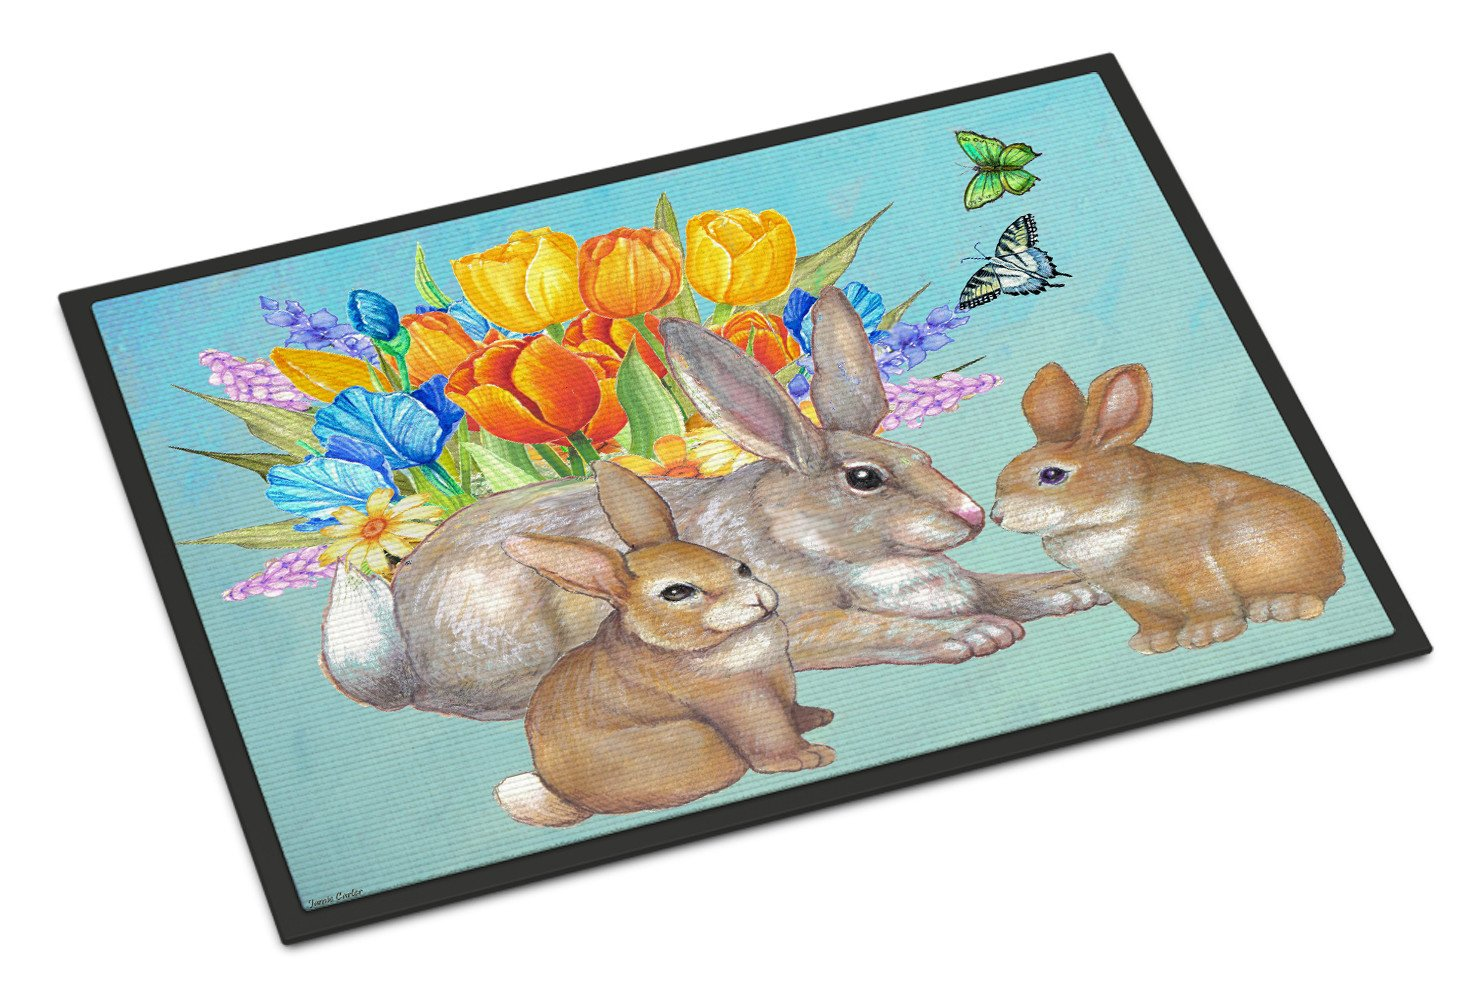 Bunny Family Easter Rabbit Indoor or Outdoor Mat 24x36 PJC1065JMAT - the-store.com